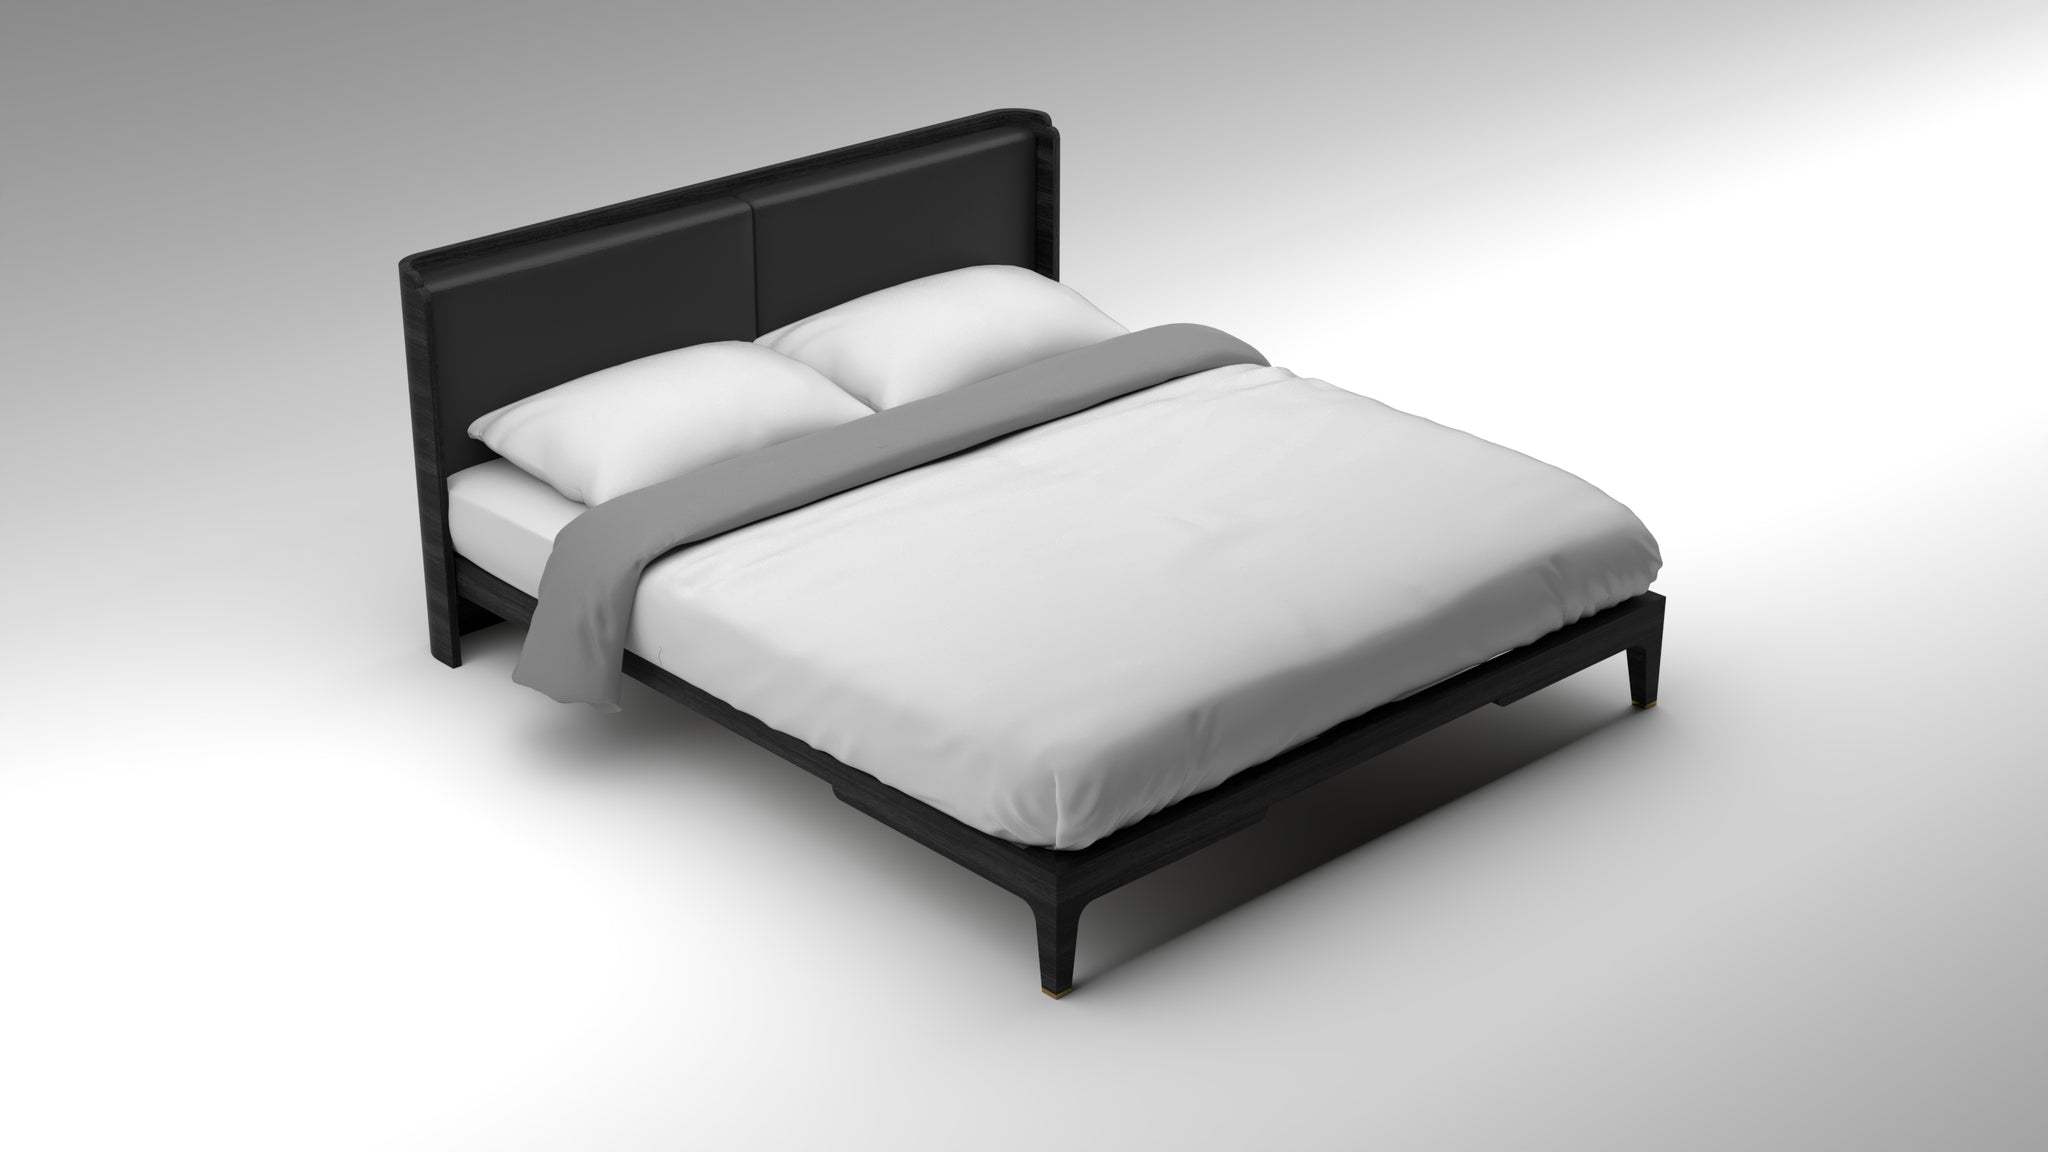 akar bed, guimar bed, black bed frame, anthracite bed frame, leather upholstery headboard, minimalist design